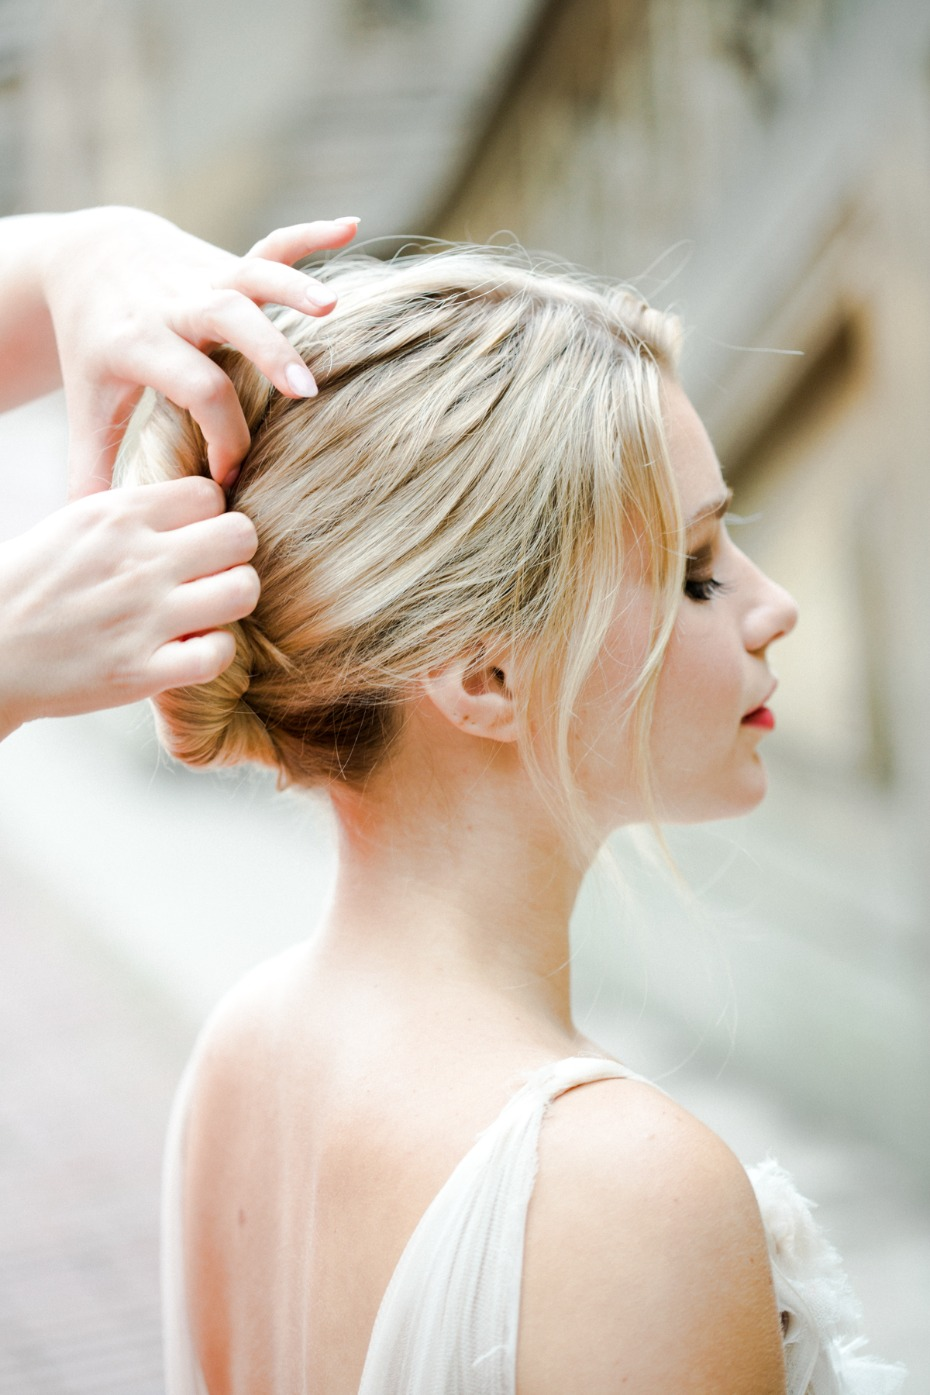 andrewandadaphotography_nyc_hairtutorial-14